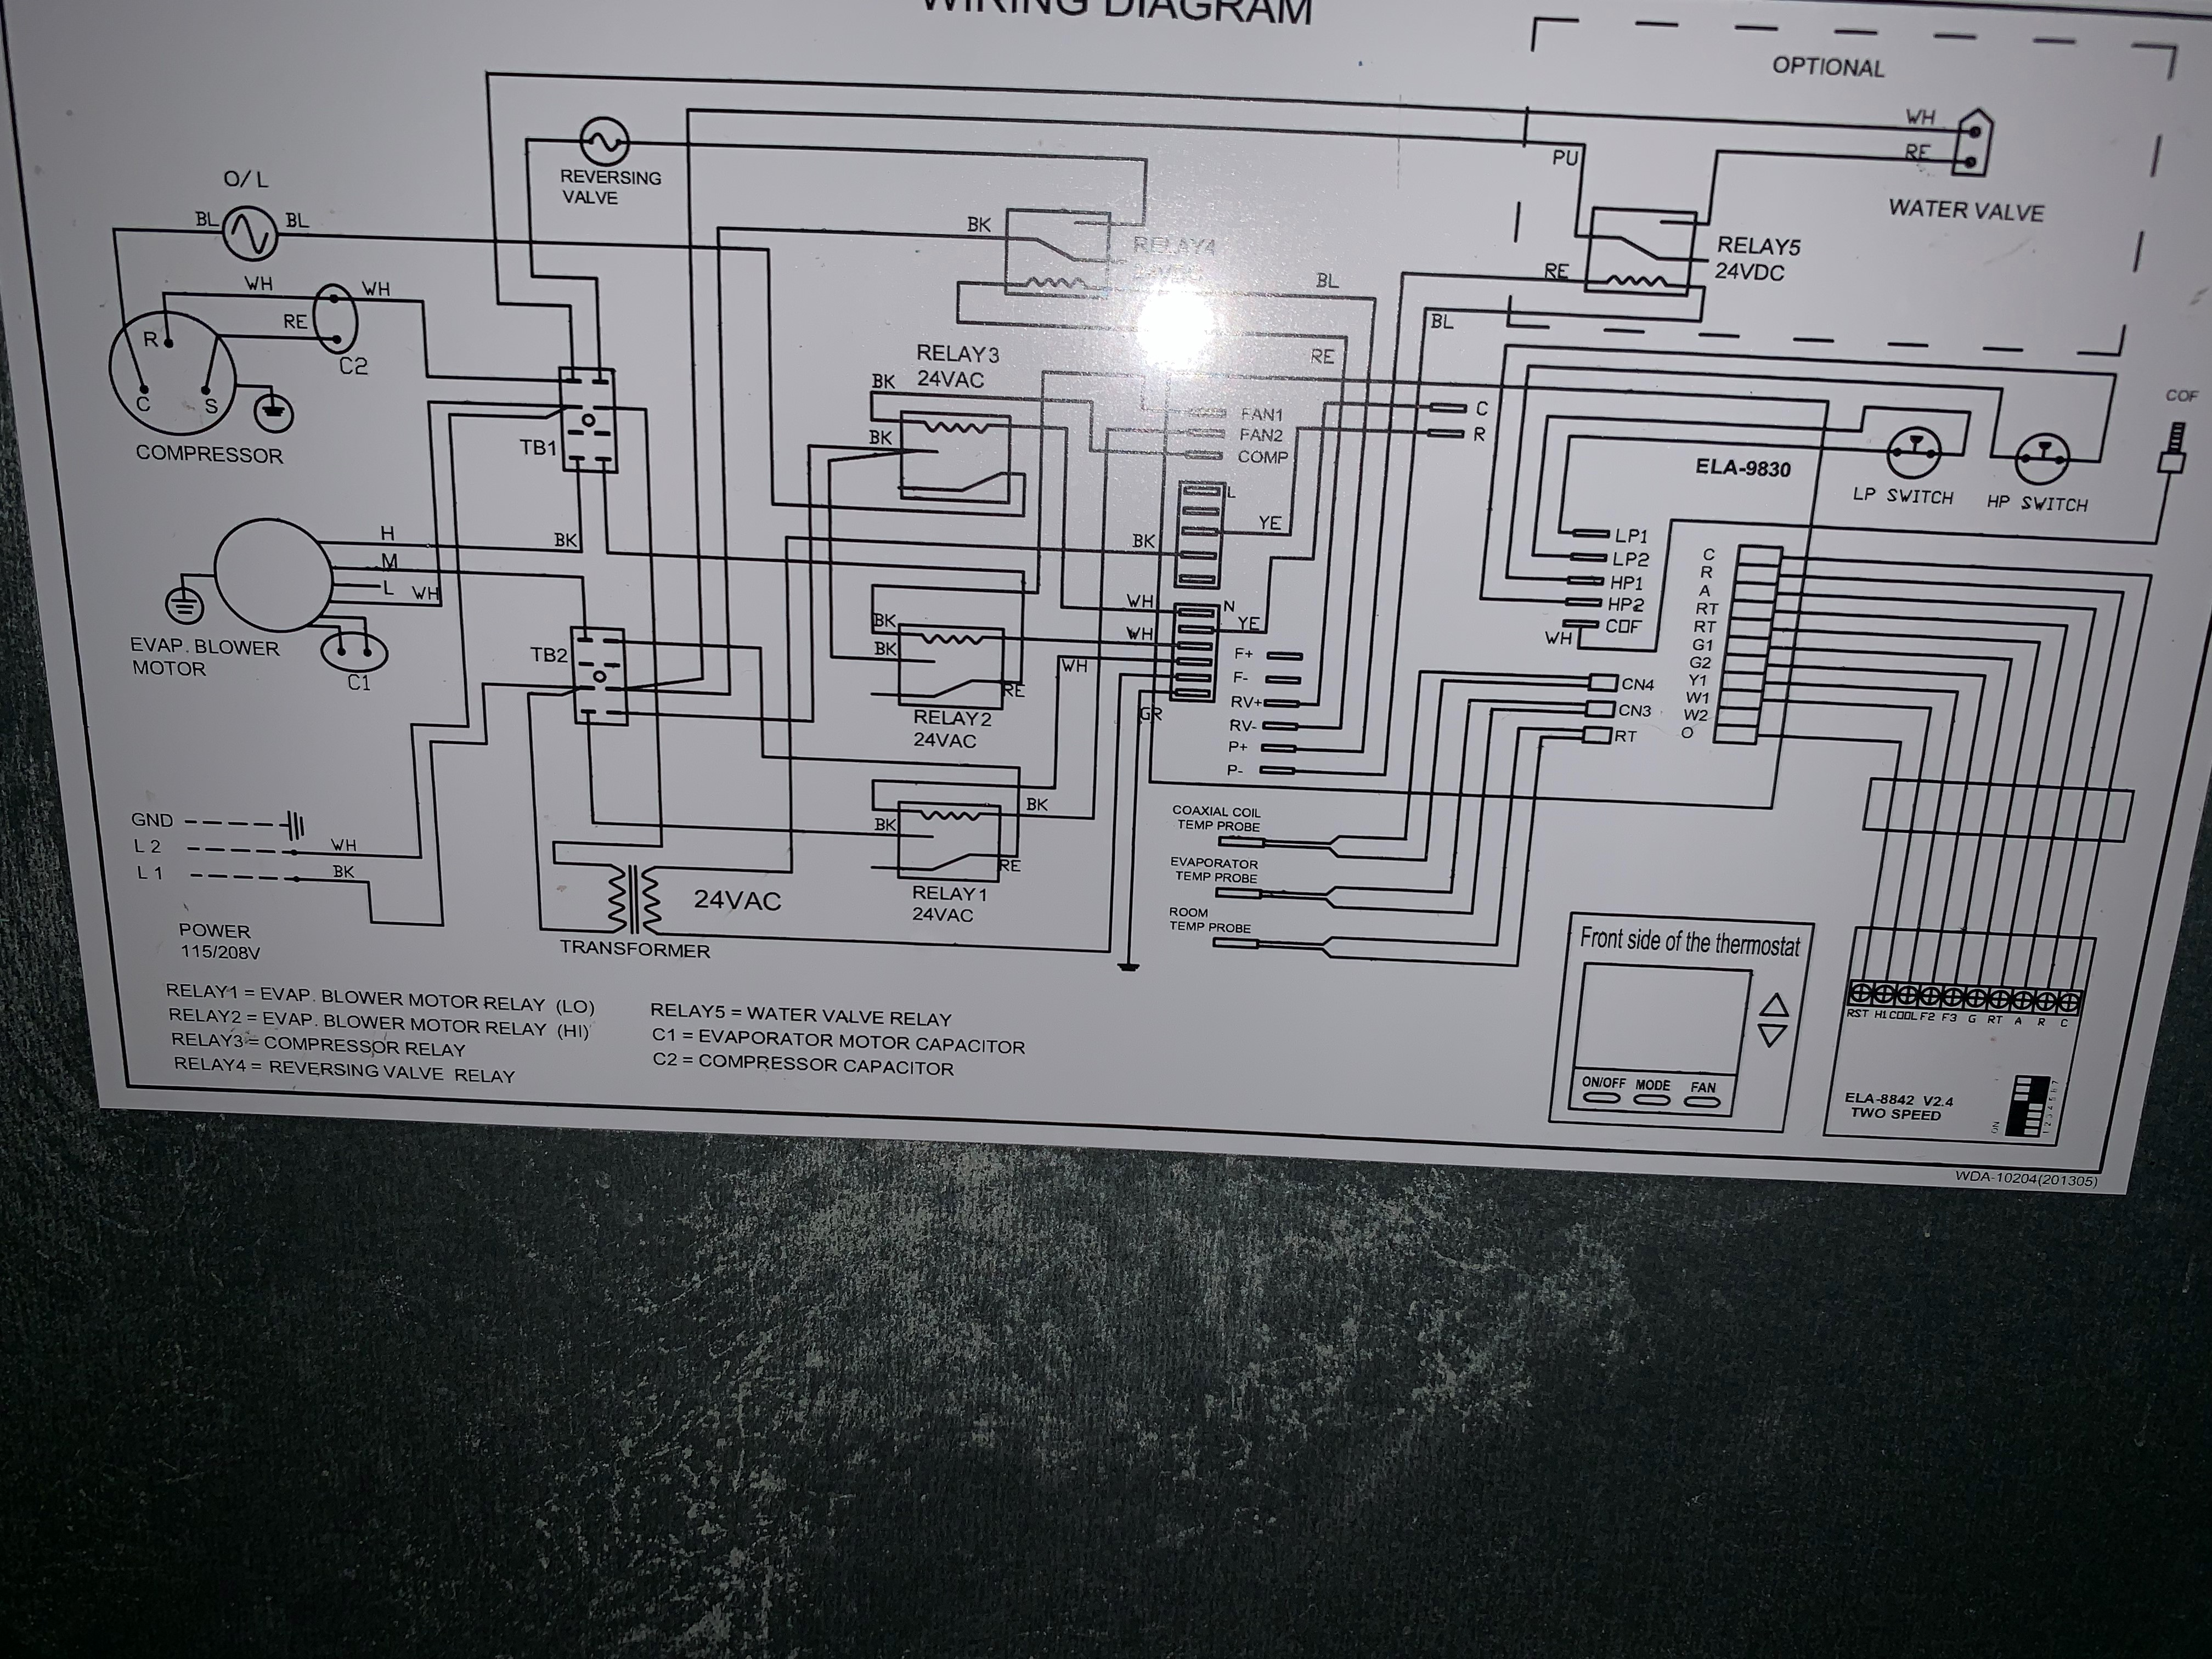 Aprilaire 700 Nest Wiring Diagram from static-assets.imageservice.cloud